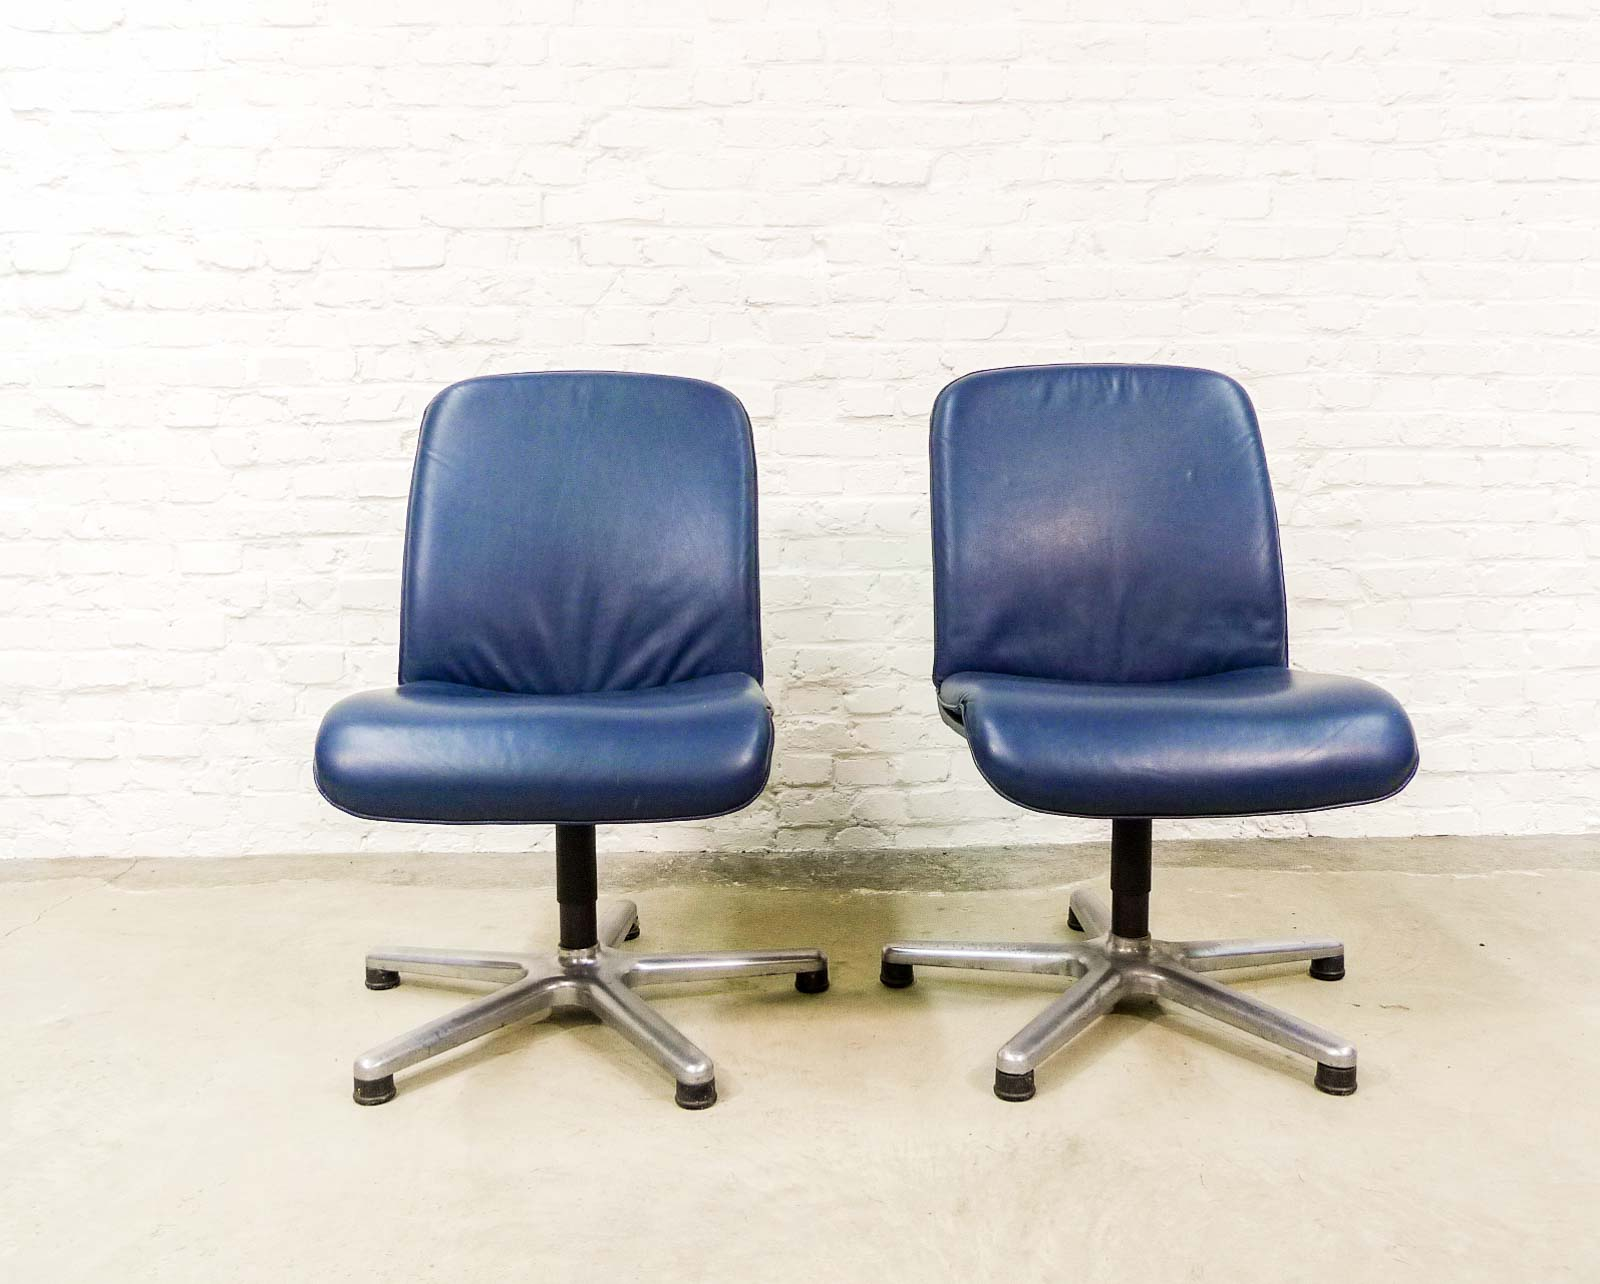 Charmant Mid Century Ocean Blue Leather Executive Chairs By Sitag, Switzerland